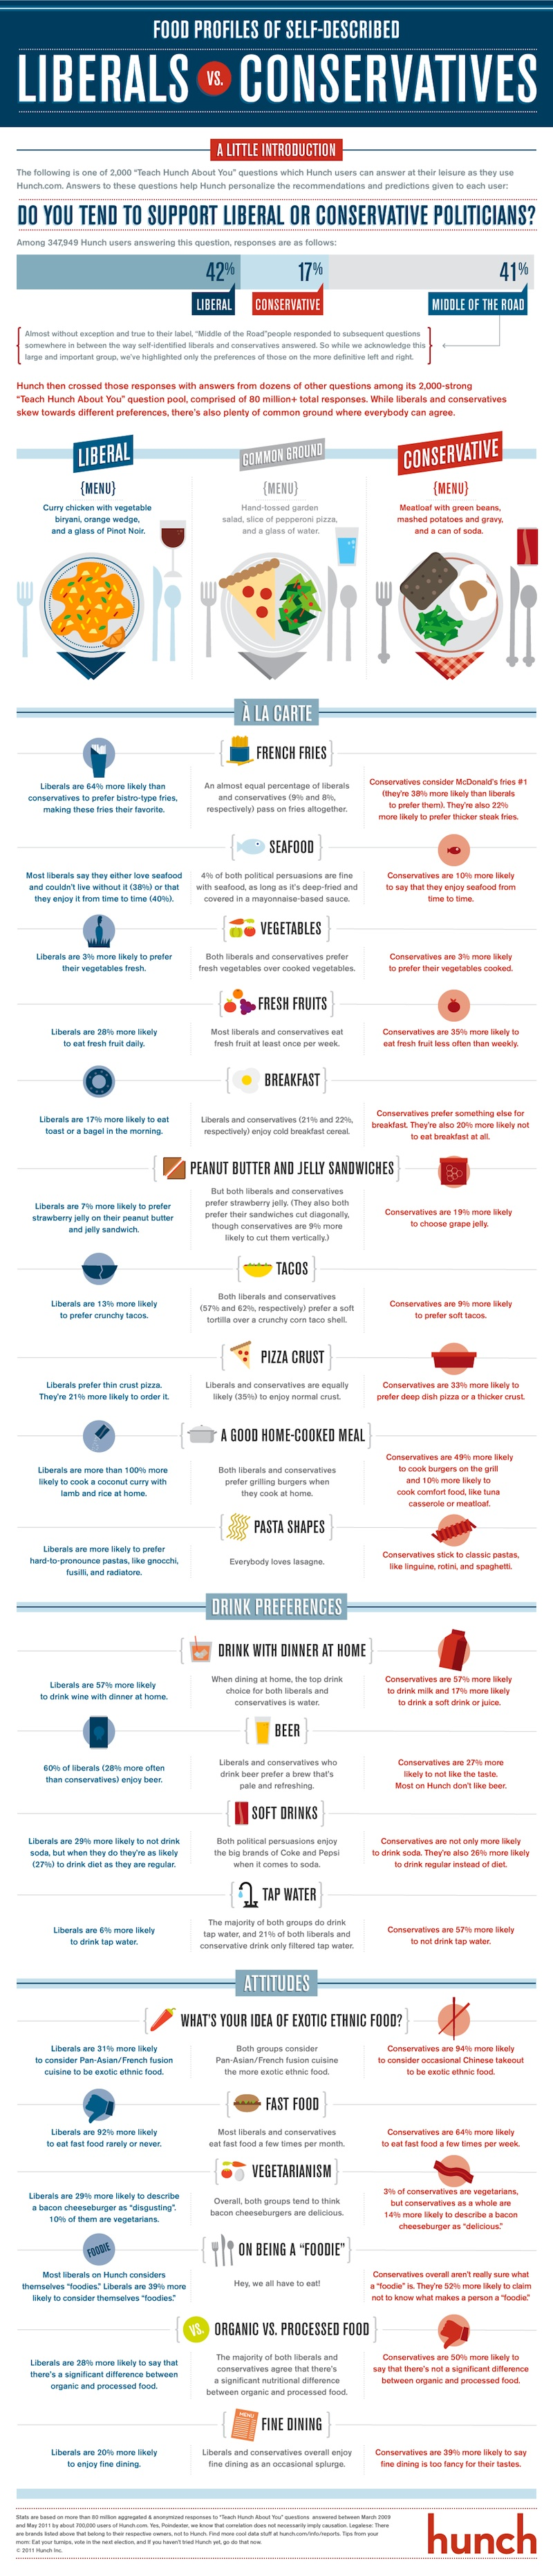 Infographic: Food Profiles of Self-Described Liberals Vs. Conservatives